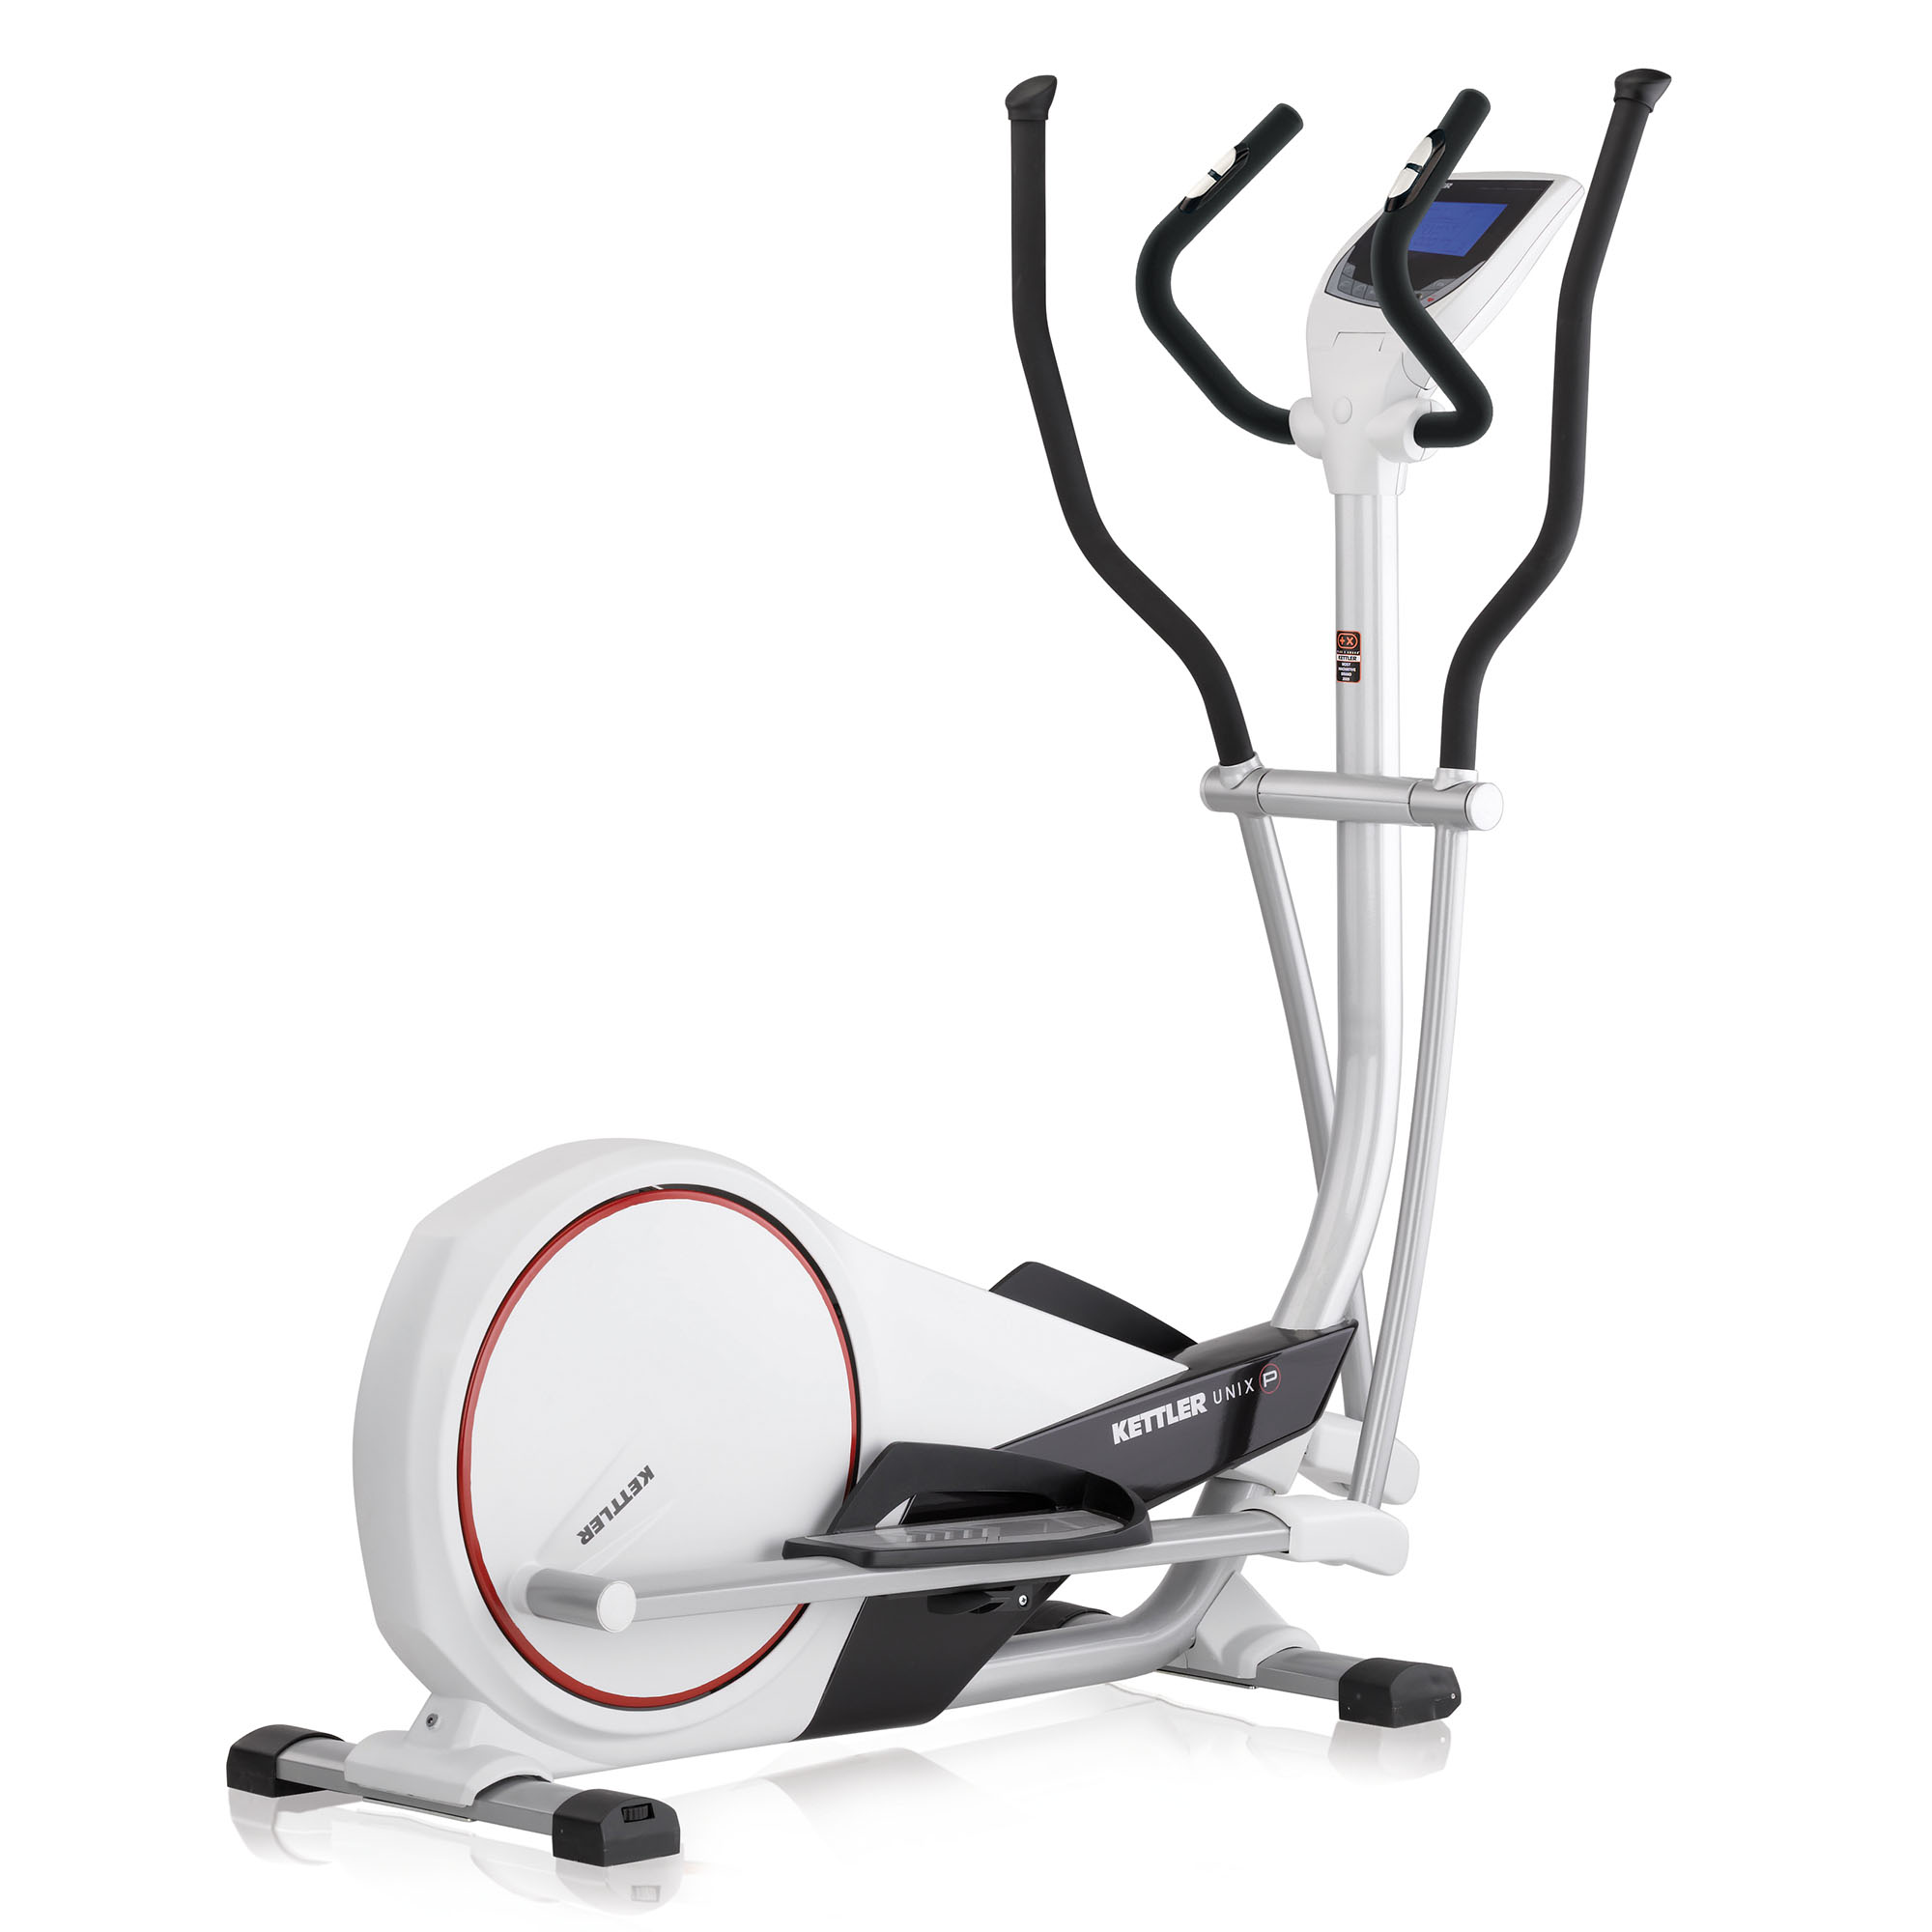 Kettler UNIX P Elliptical Cross Trainer